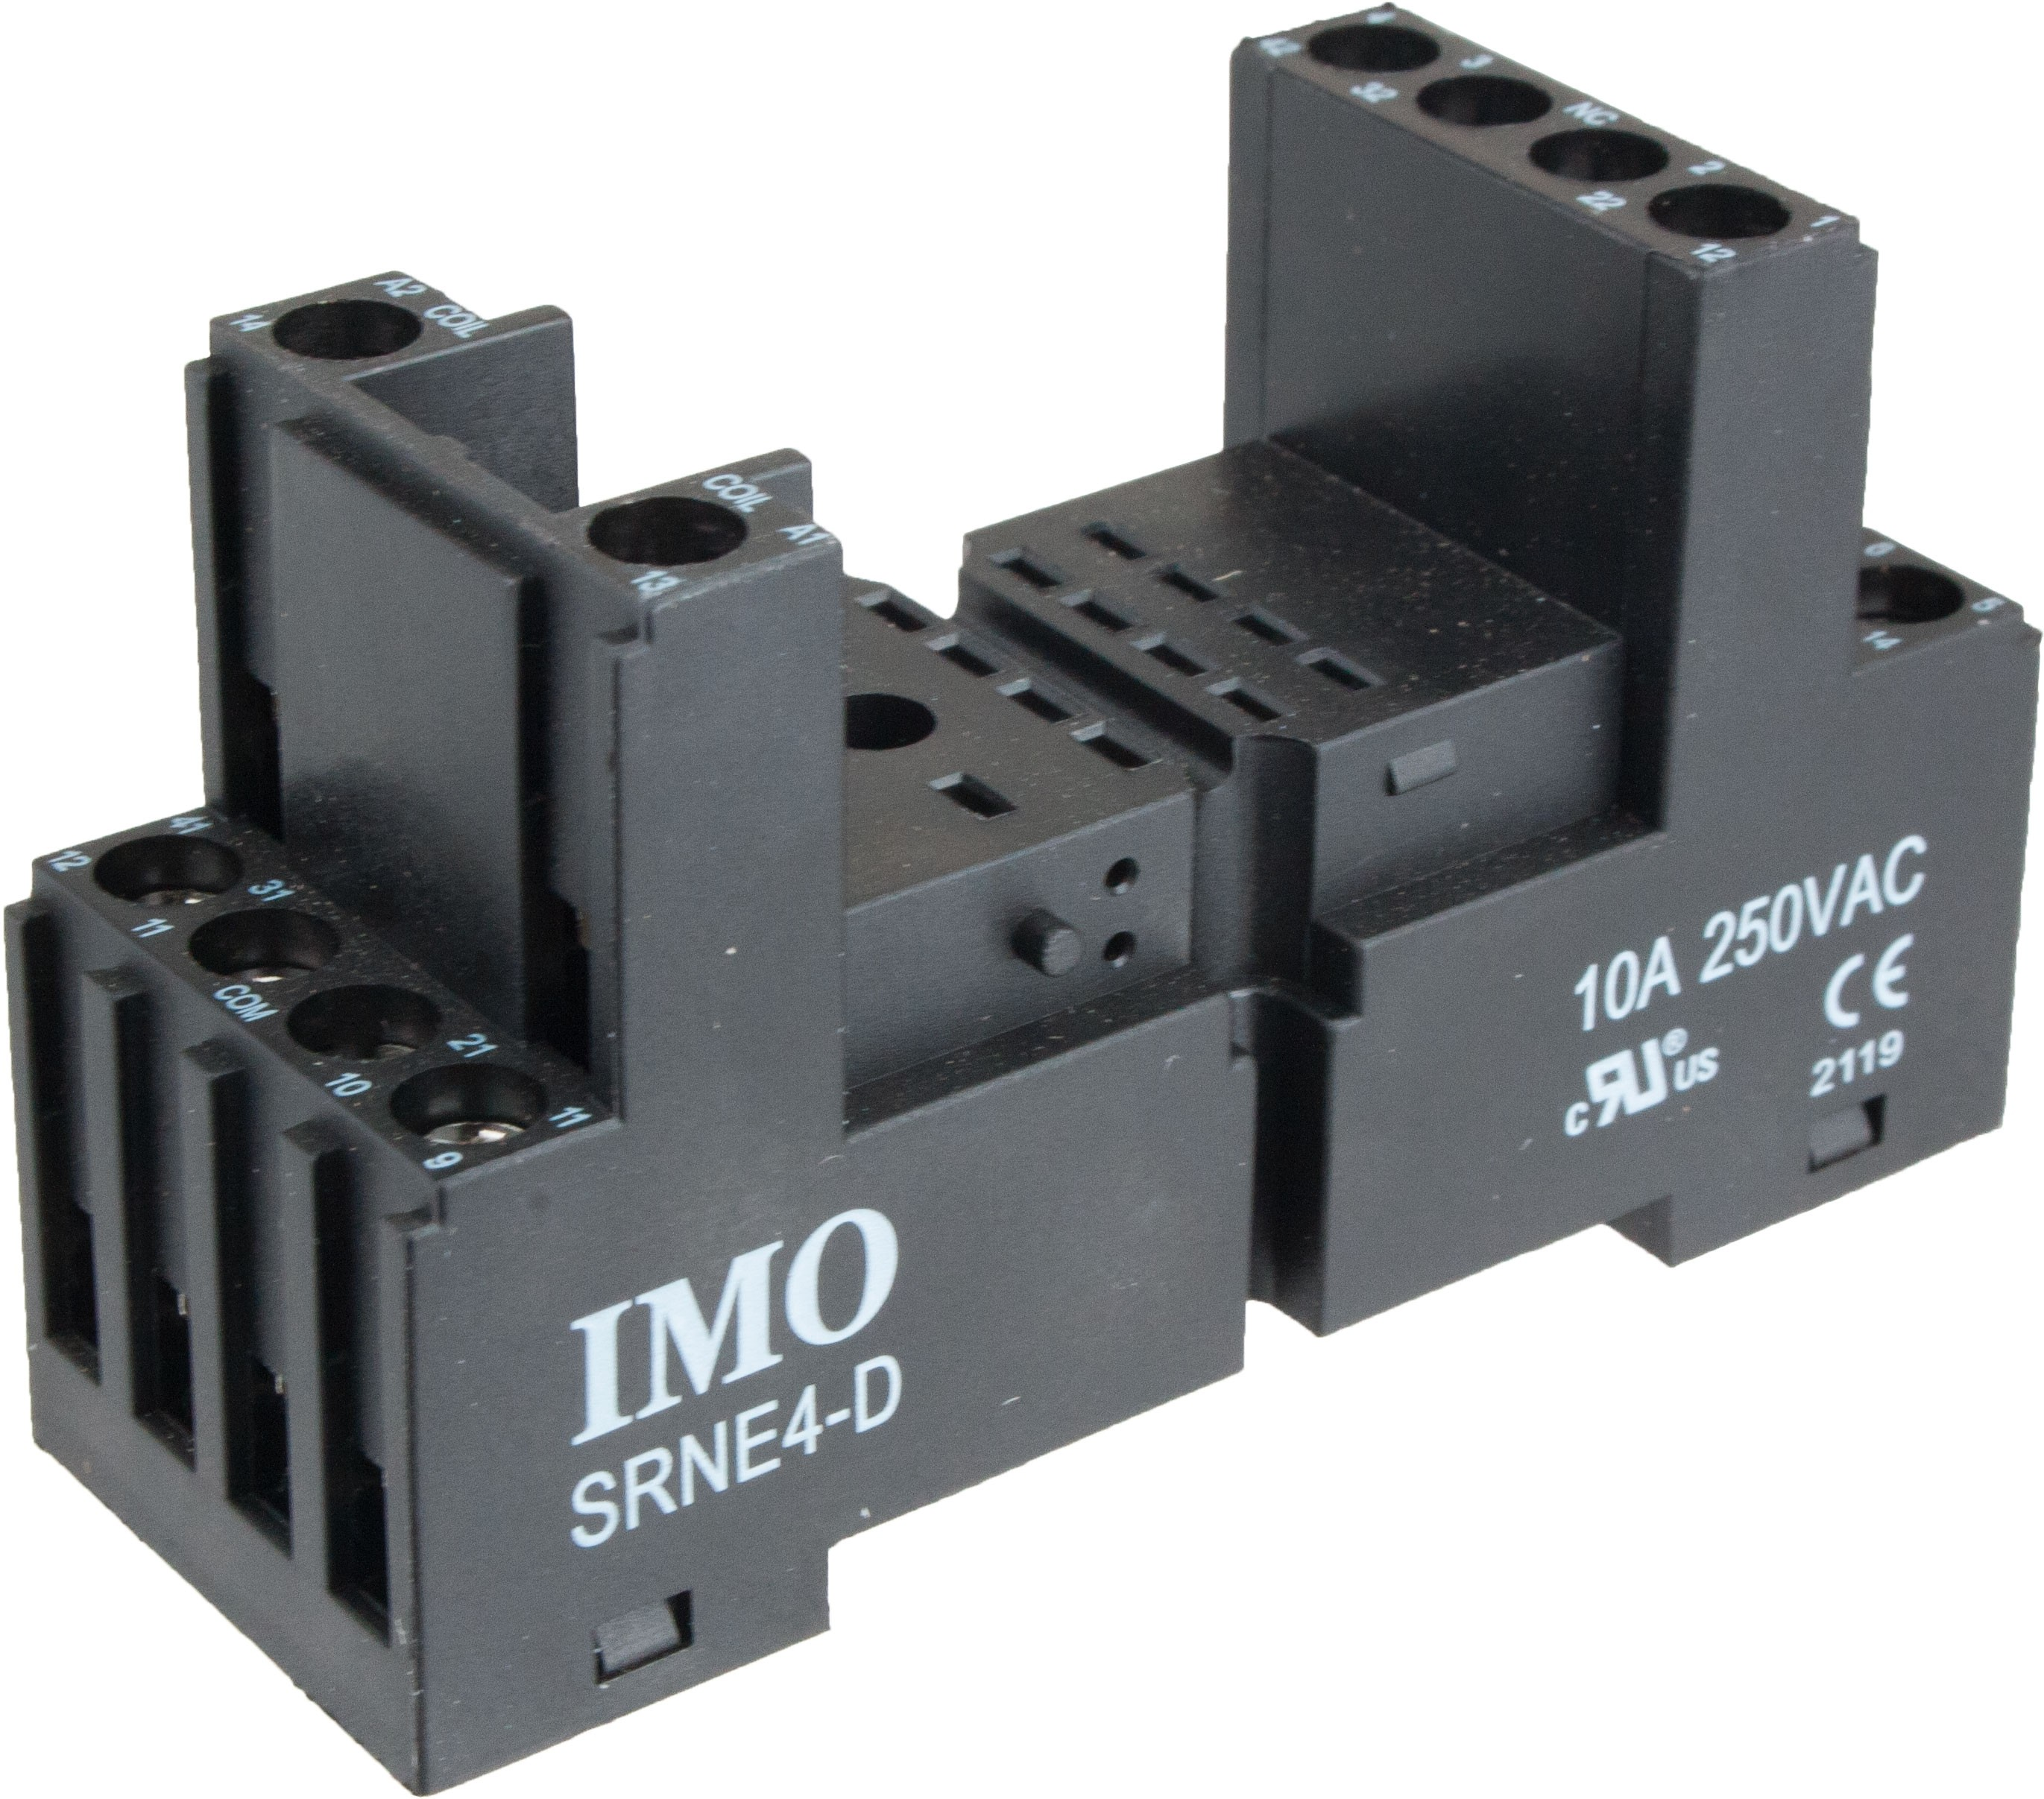 25 PACK 12 VOLT 40 AMP 4 PIN RELAYS WITH HEAVY DUTY PIG TAILS NEW ITEM